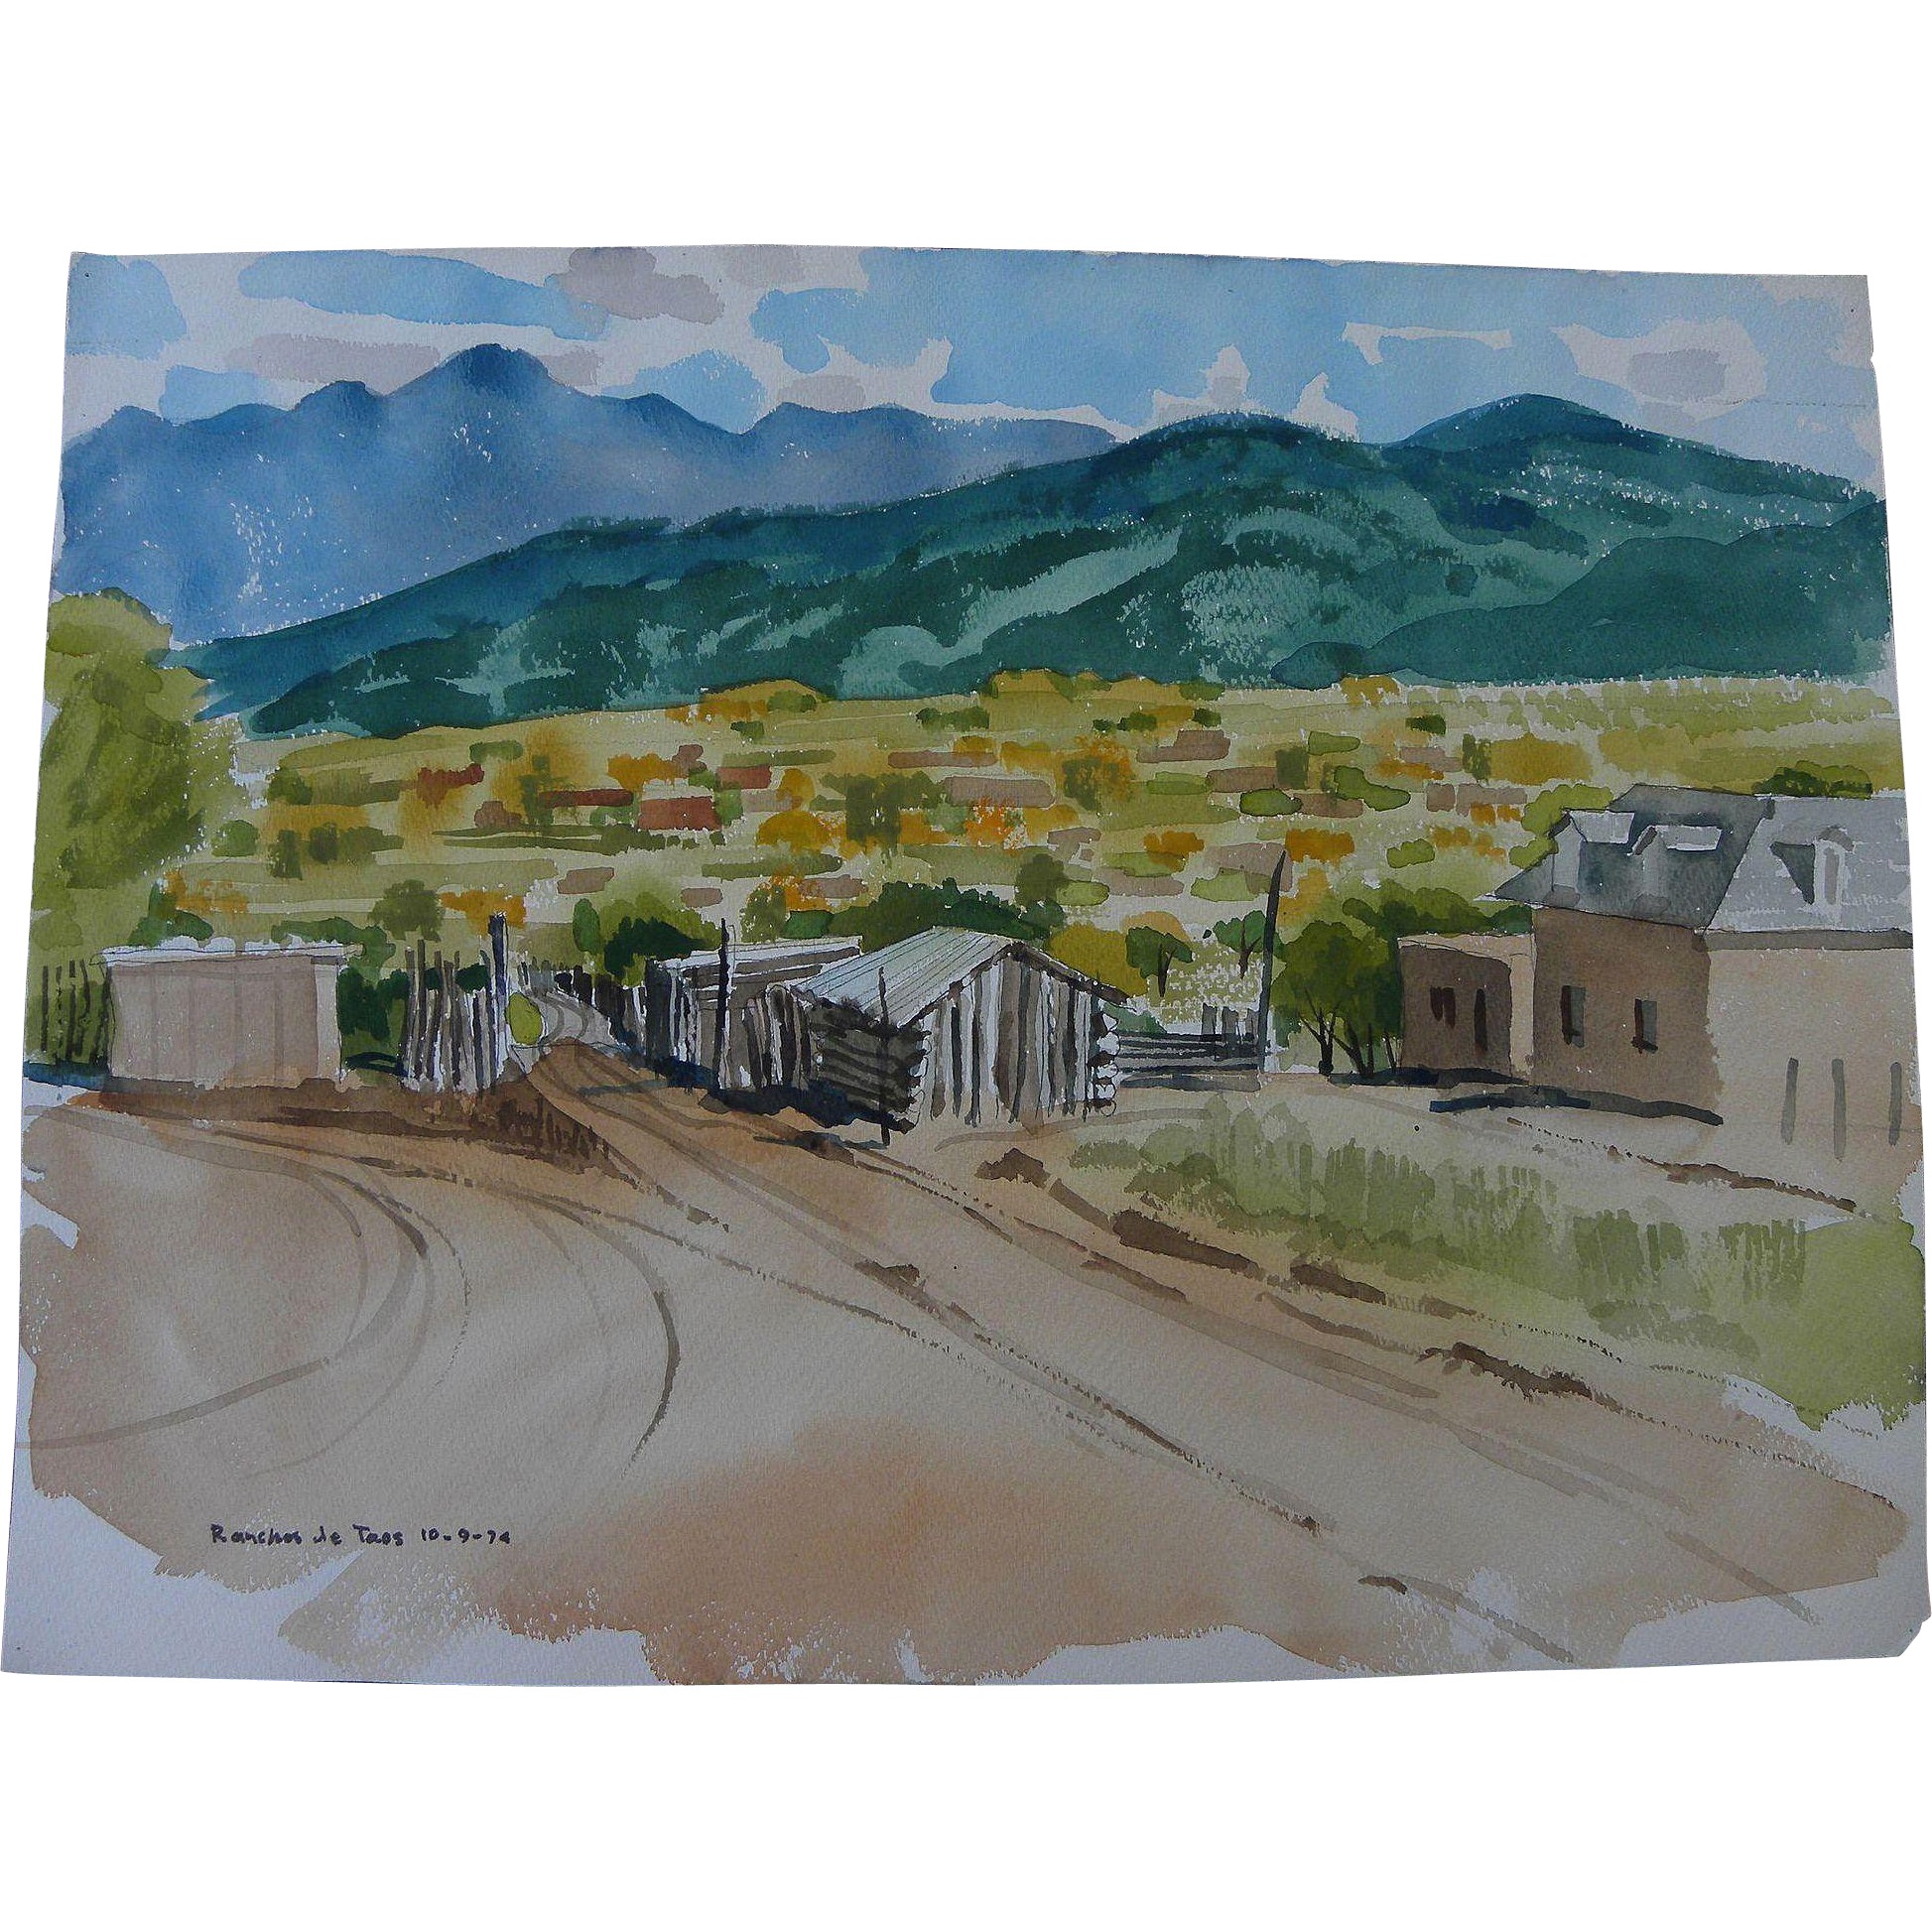 BROOKS PETTUS (1918-2003) Ranchos de Taos New Mexico 1974 landscape watercolor painting by noted artist